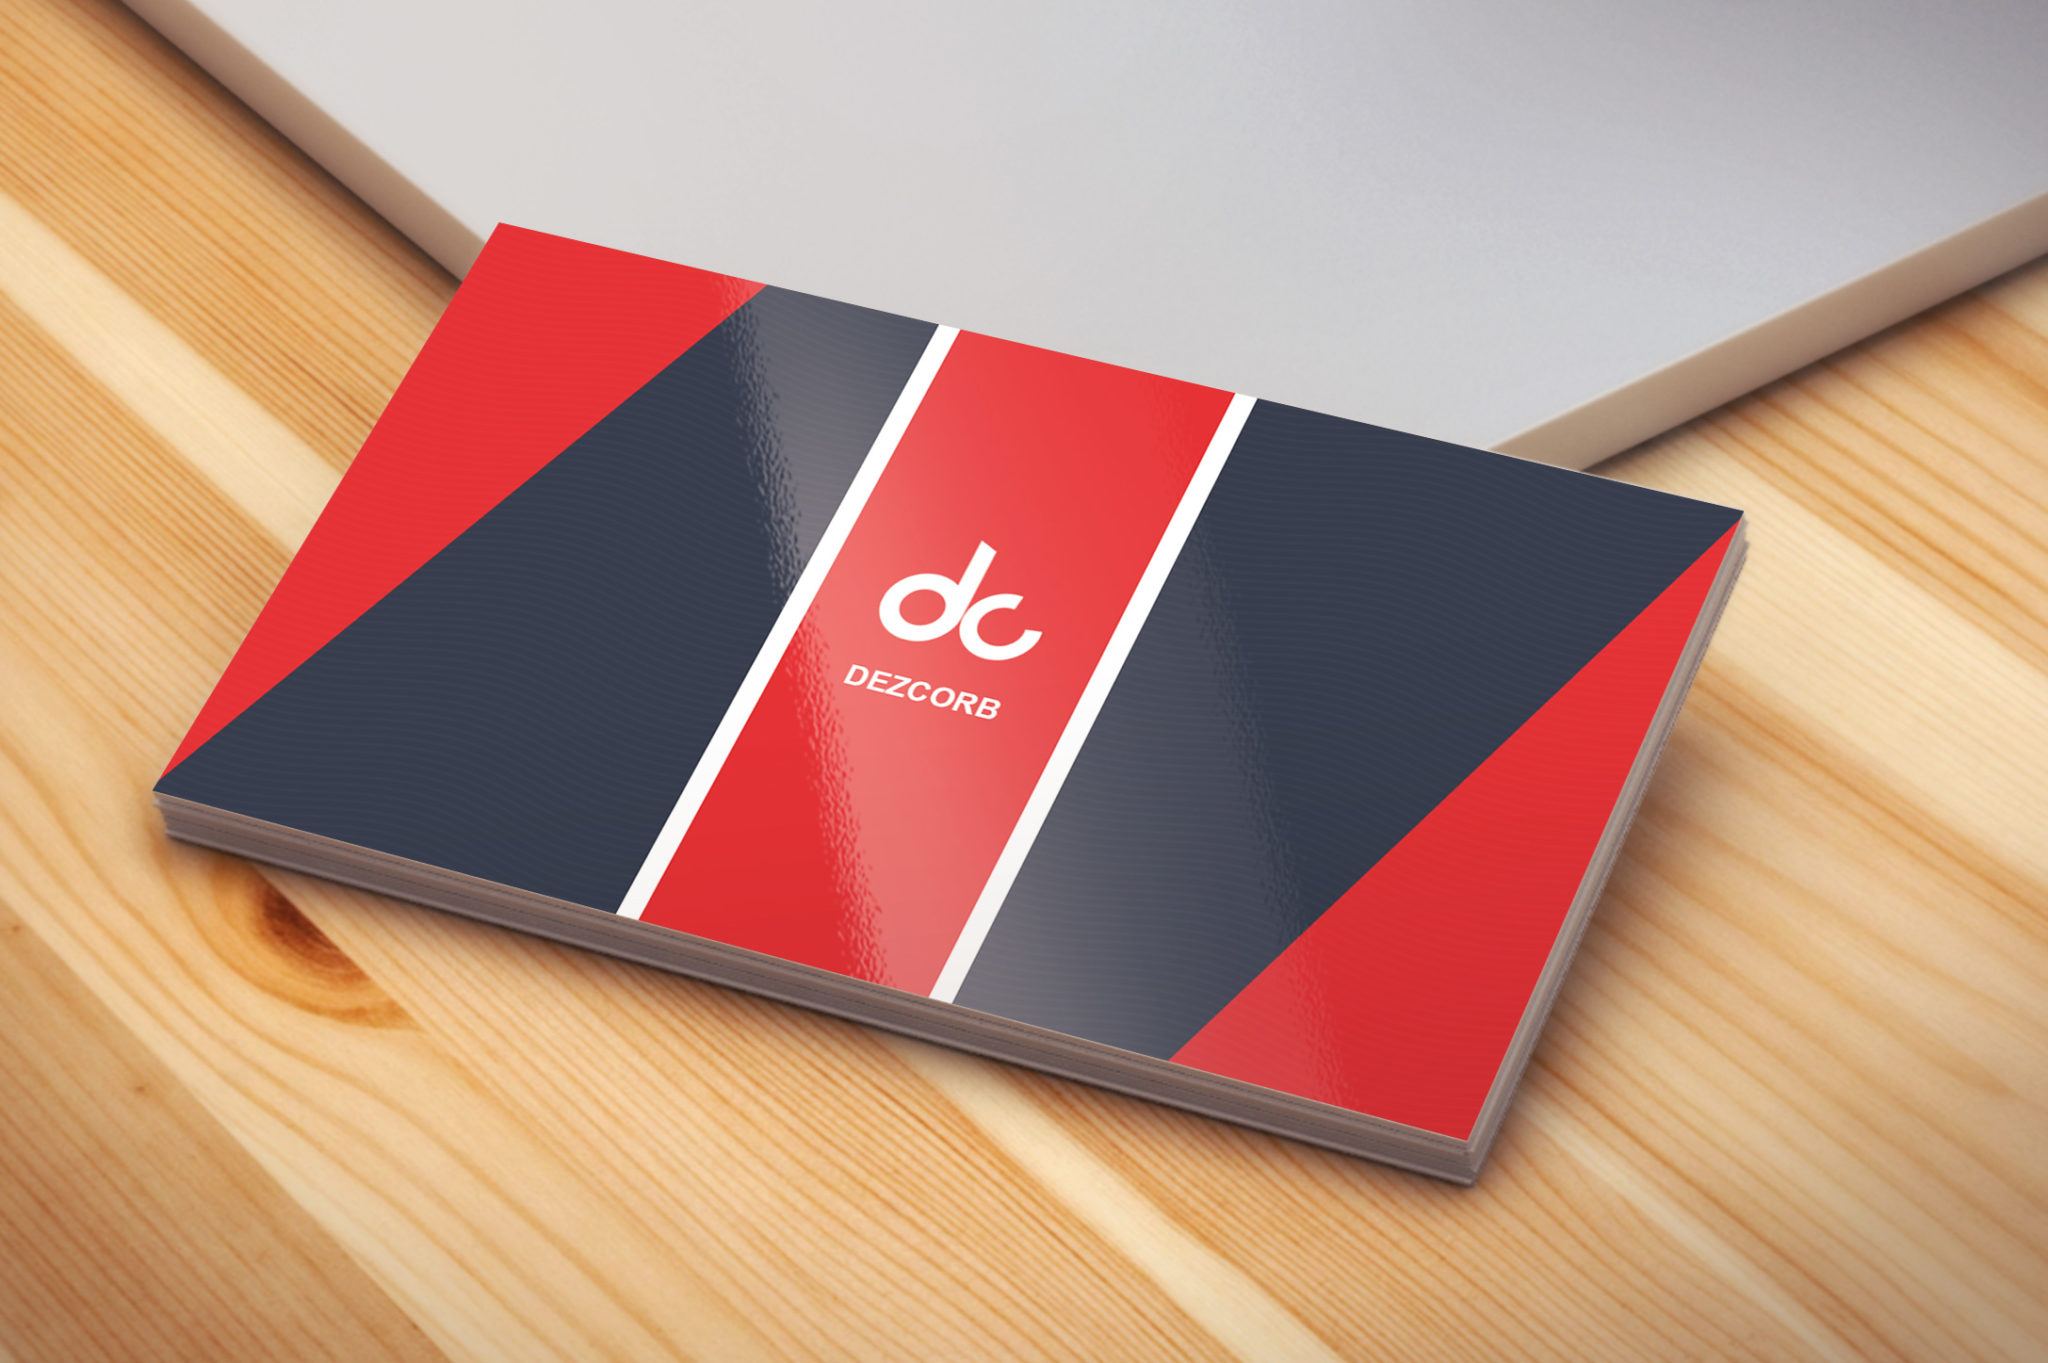 1 how to design a business card in photoshop cs6 dezcorb